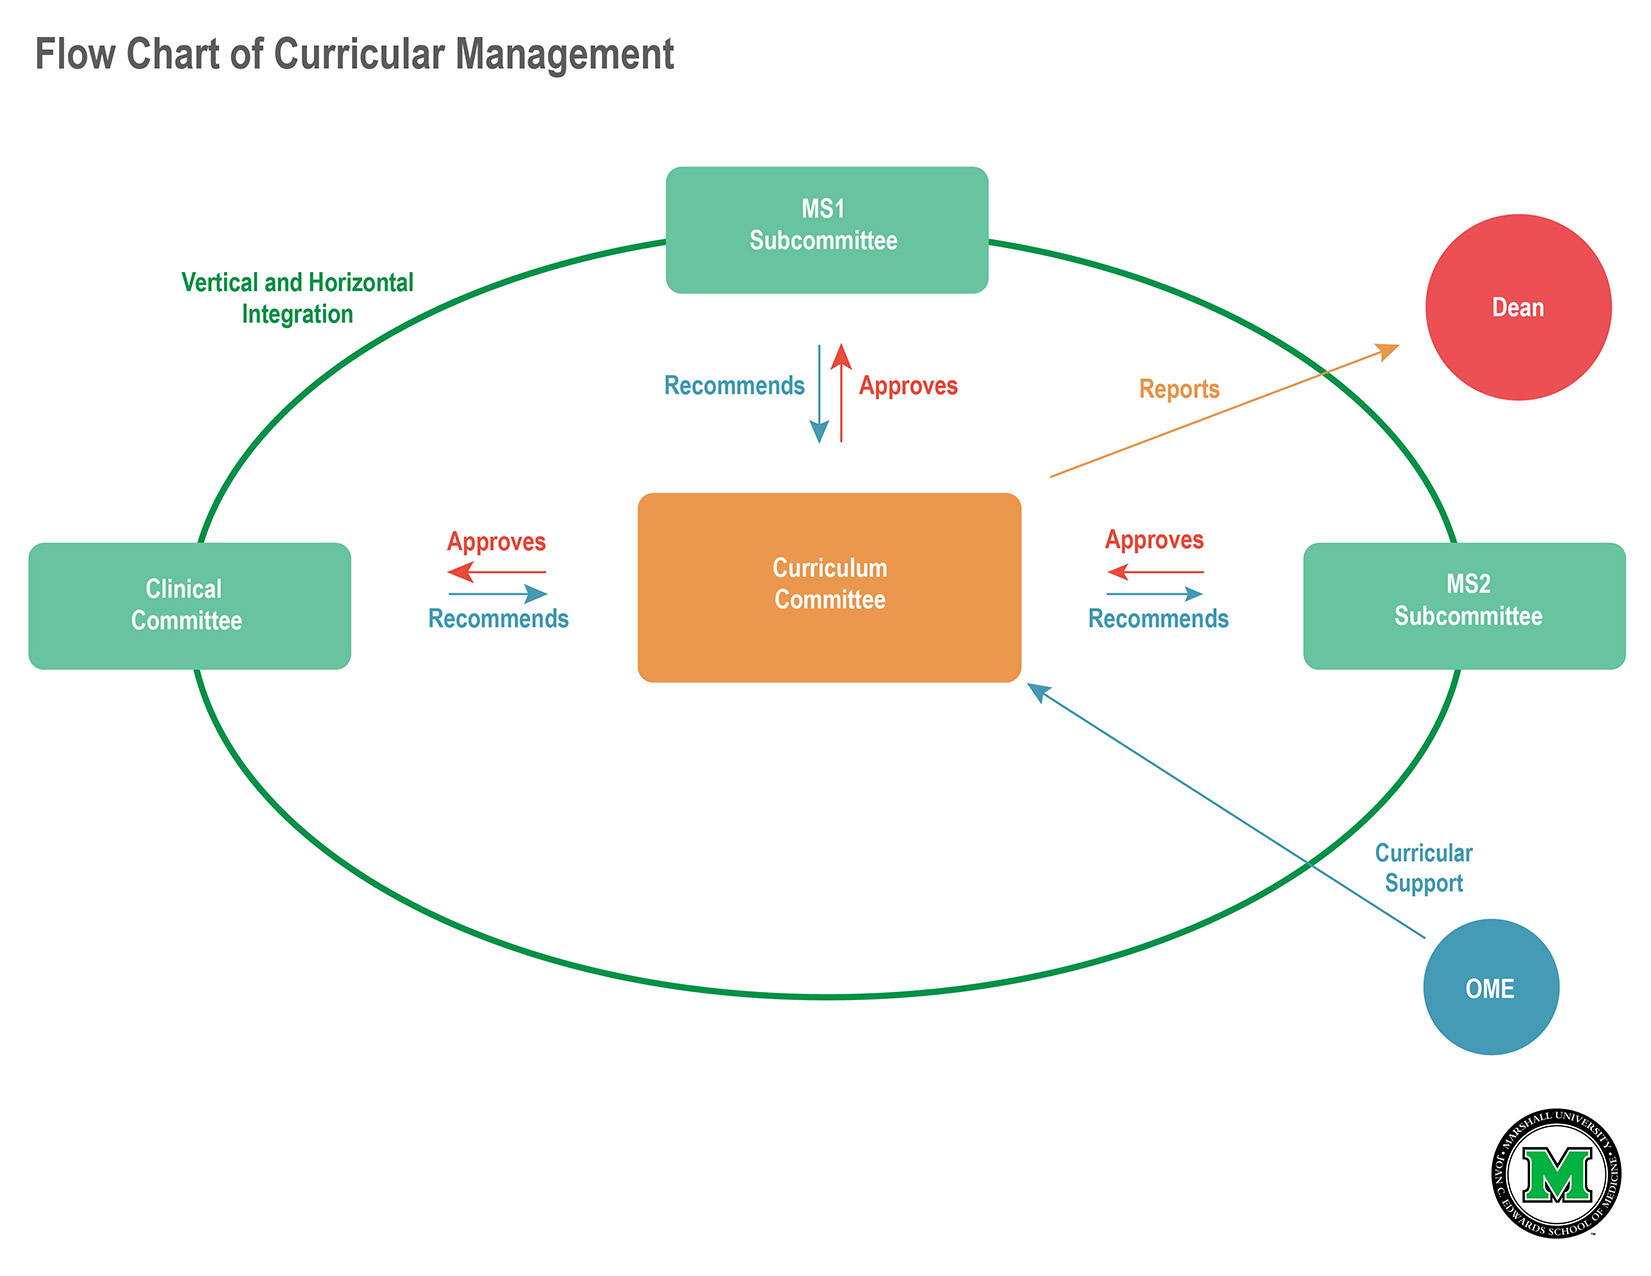 Liaison Committee On Medical Education Lcme Accreditation Process Flow Diagram Website For More Information About Please Visit Their At Lcmeorg The Chart